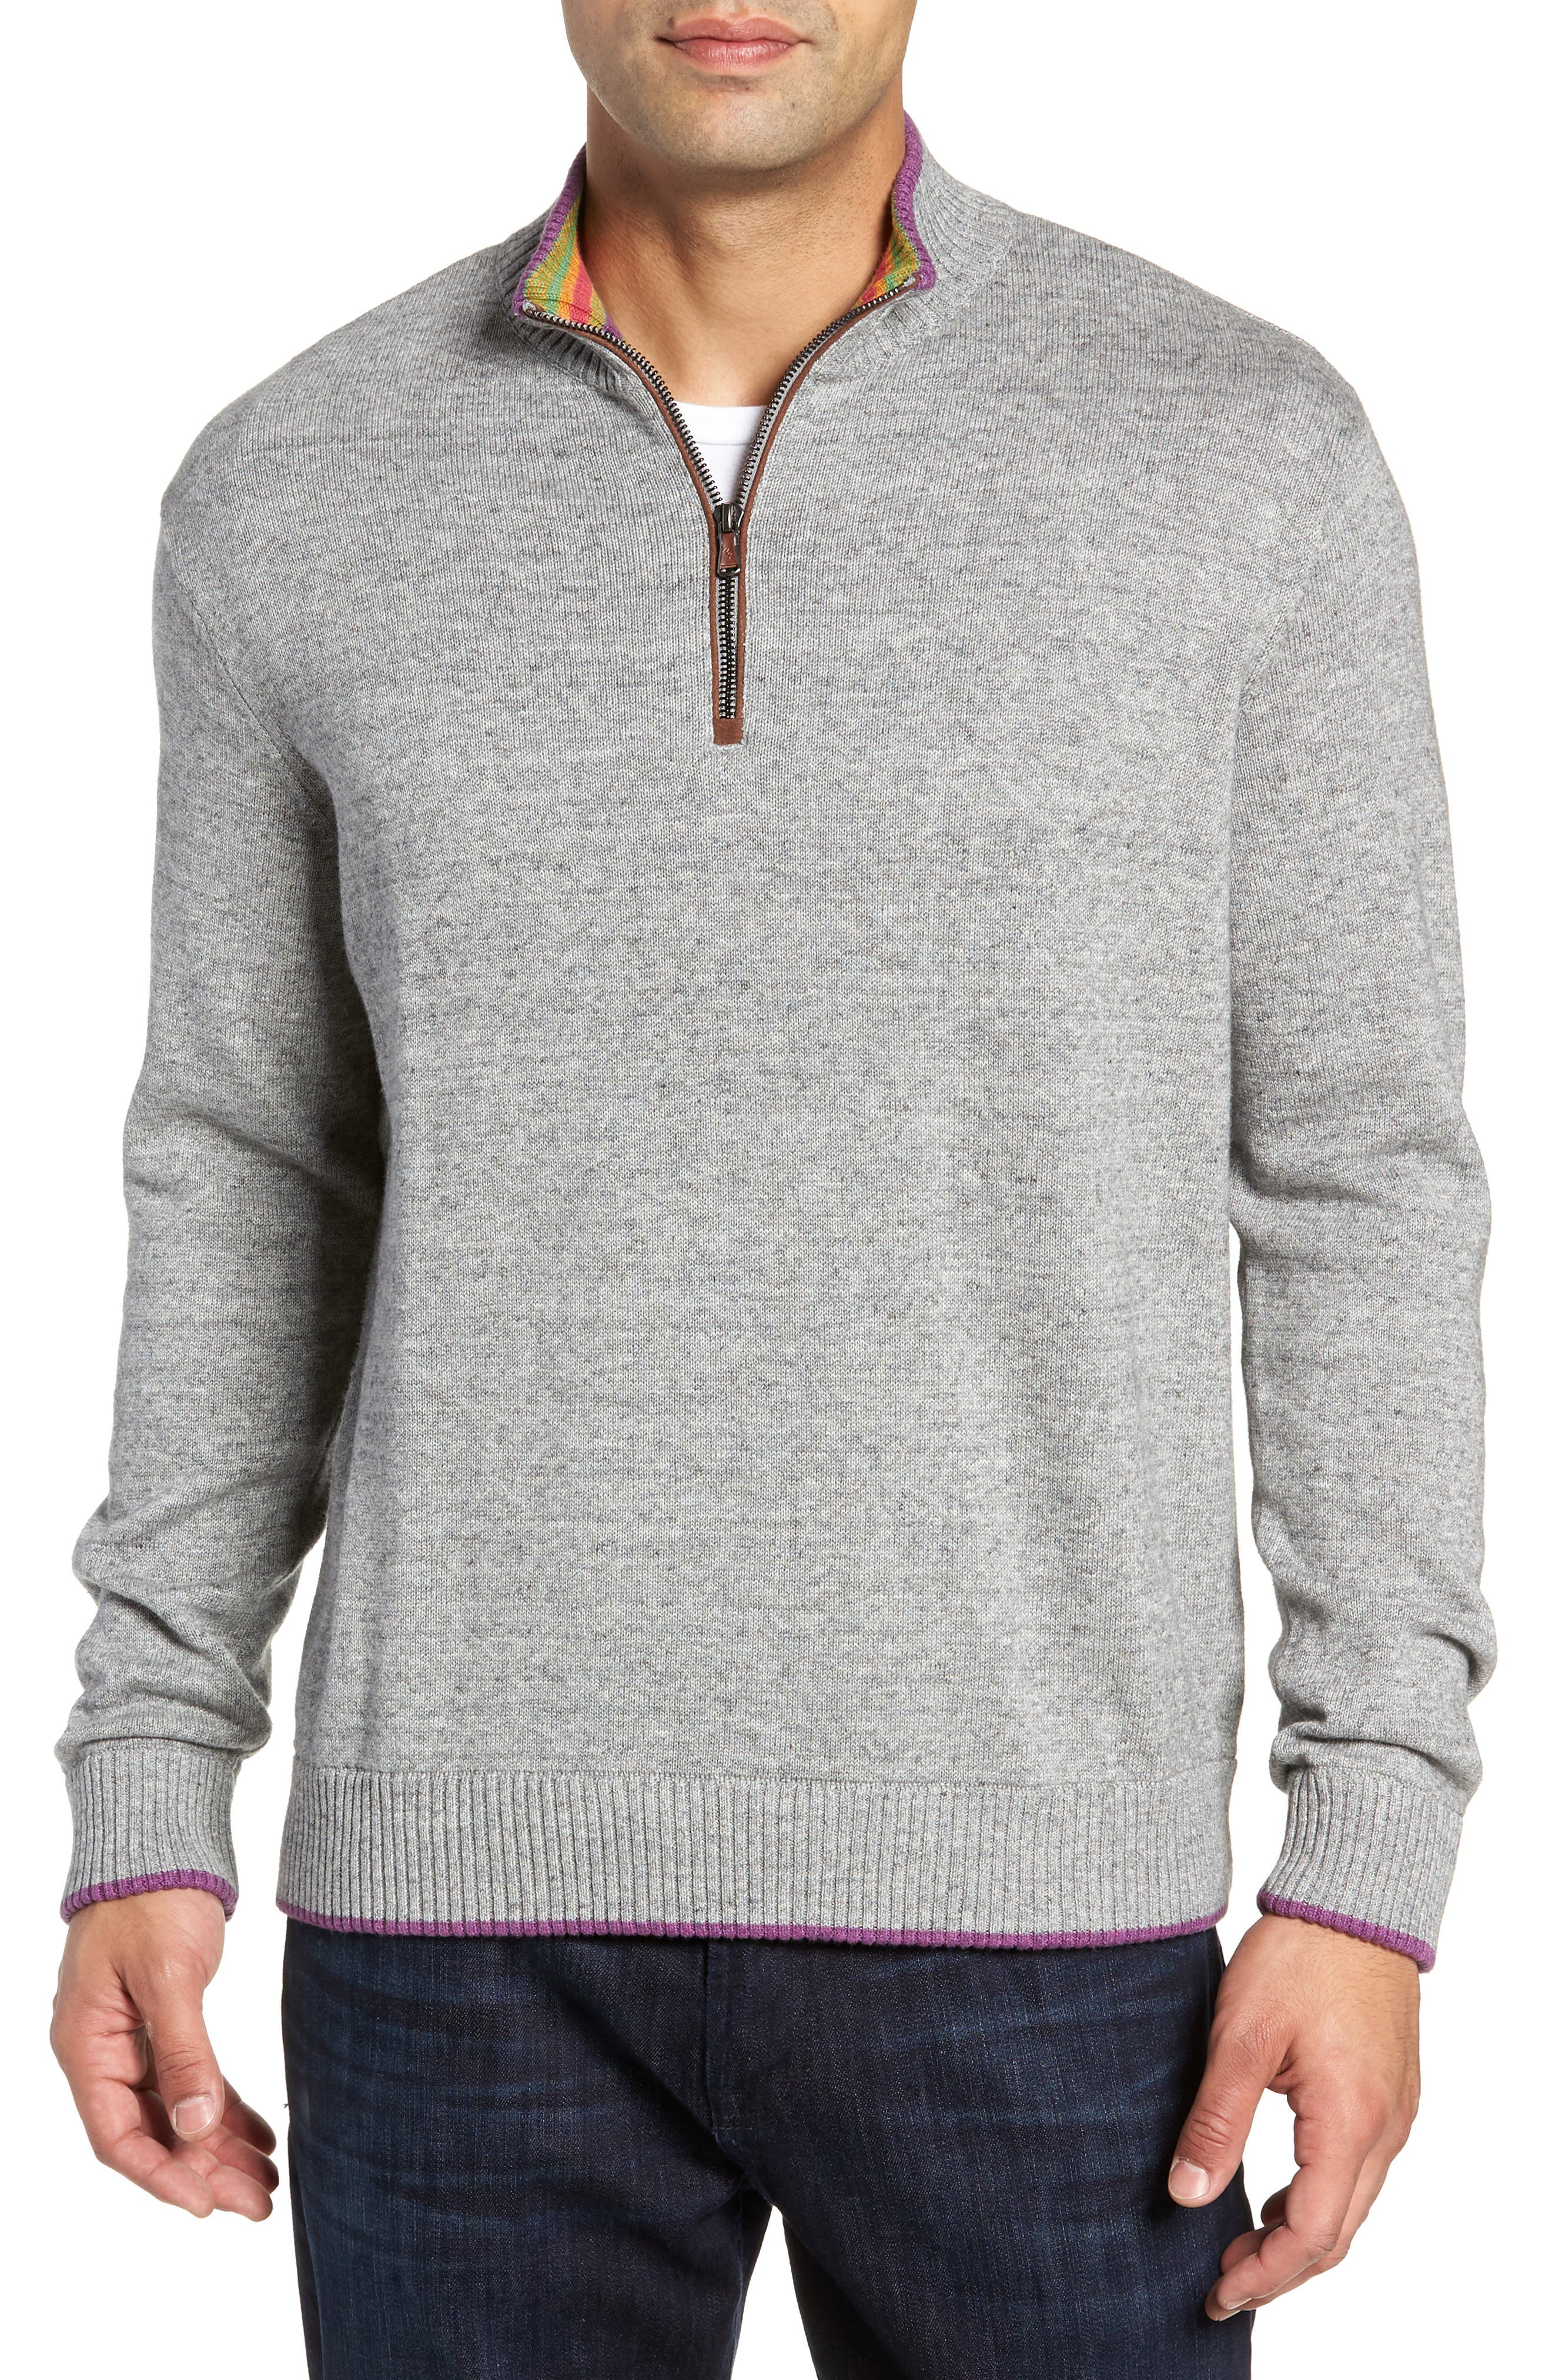 Cavalry Classic Fit Quarter Zip Sweater,                             Main thumbnail 1, color,                             032